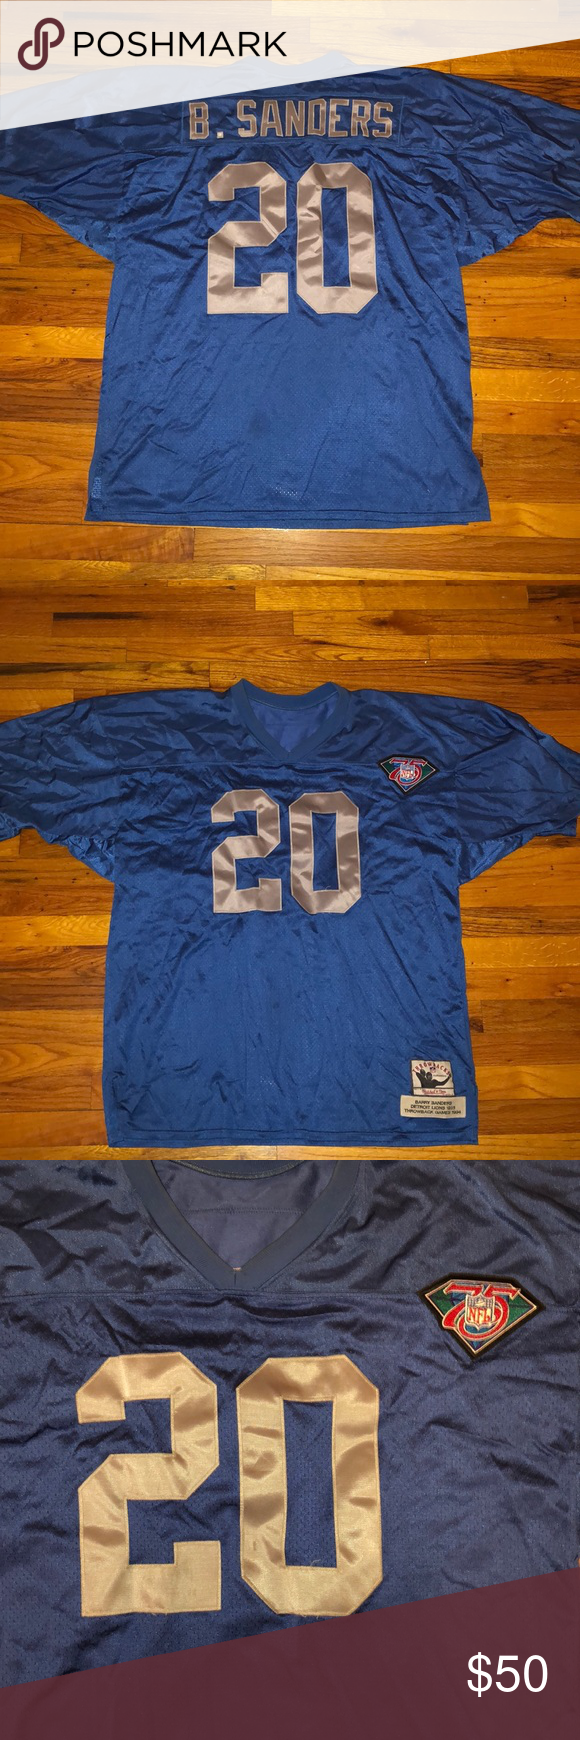 best service d8adb 3d534 Barry Sanders Mitchell & Ness Throwback Jersey Preowned ...